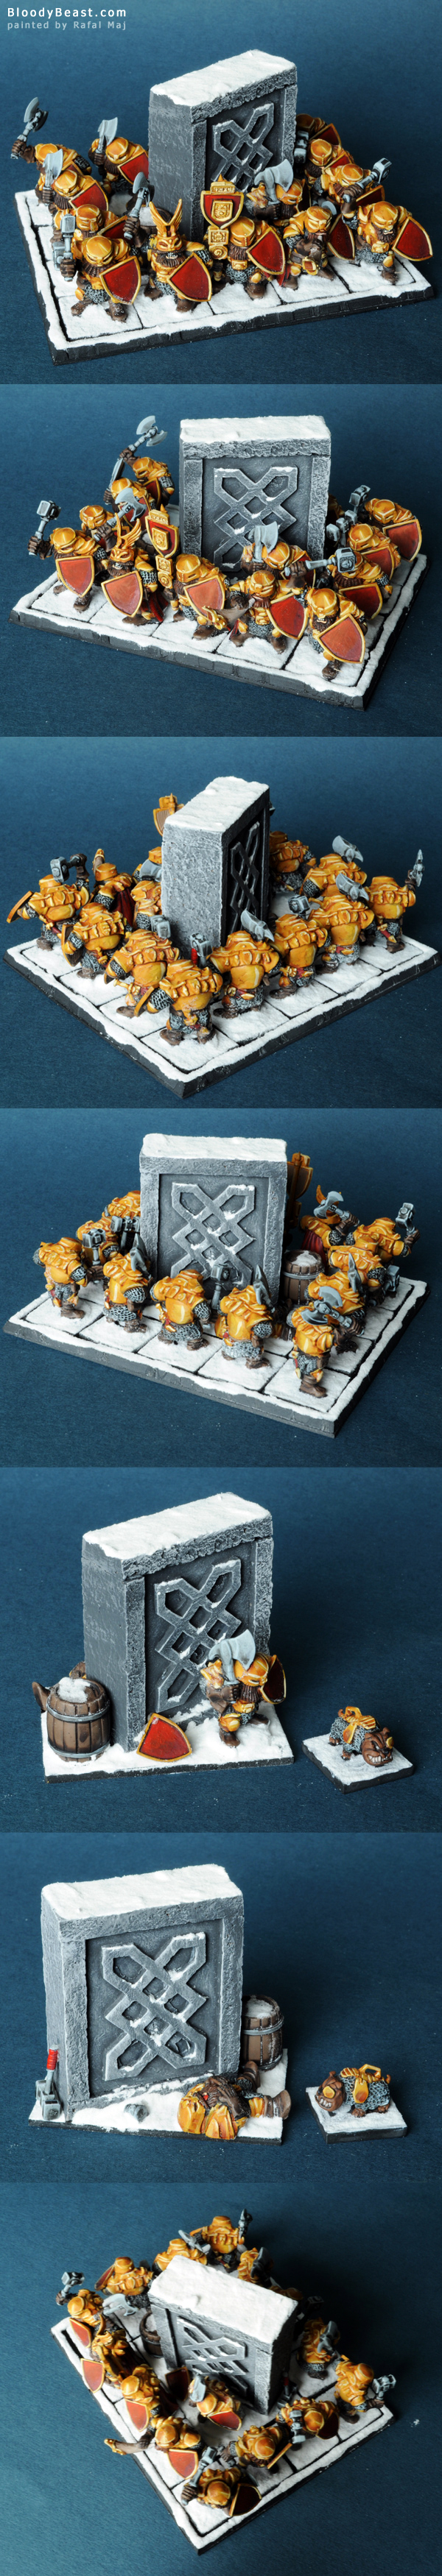 Mantic Dwarf IronGuard Regiment painted by Rafal Maj (BloodyBeast.com)